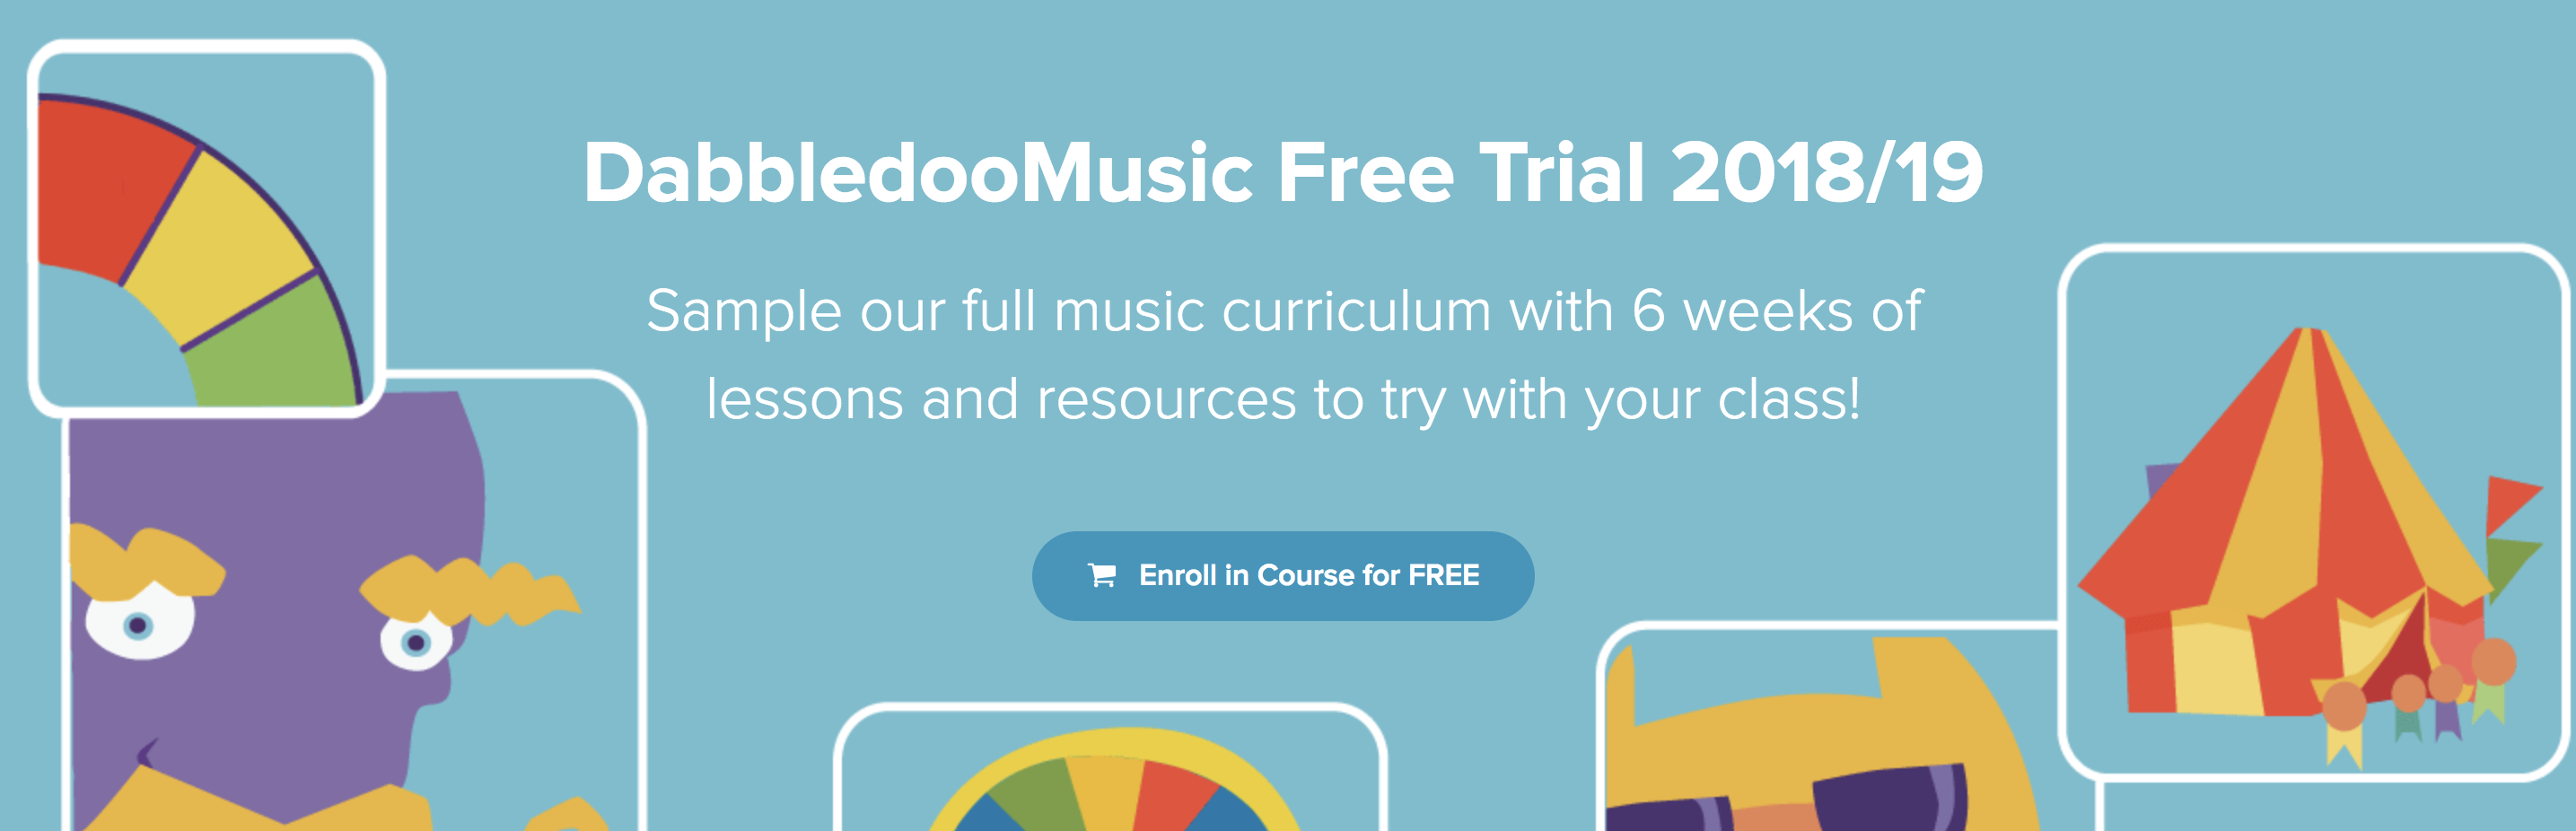 DabbledooMusic Free Trial